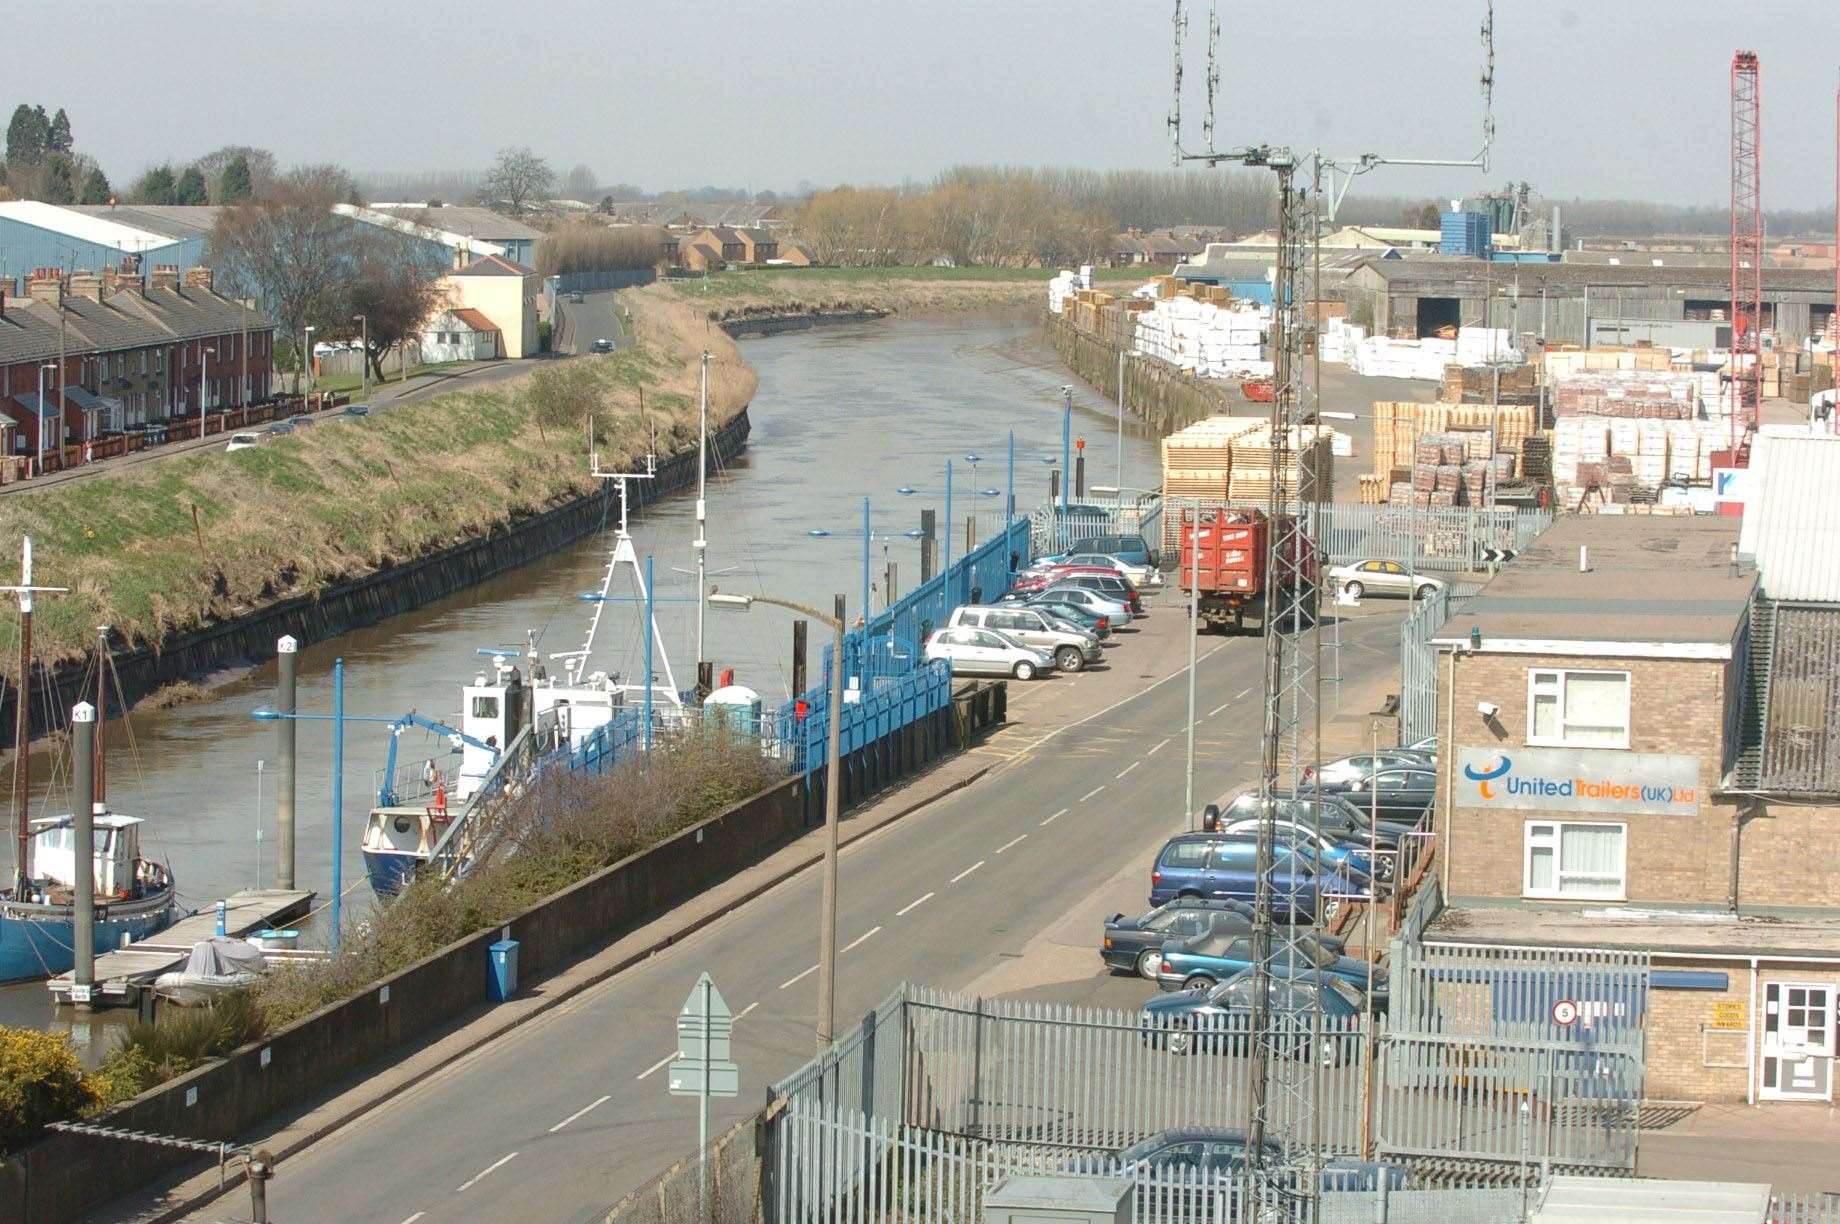 general view of Wisbech ..contact Annalise Lister 01353 727780 or 07796 358144. (19870804)